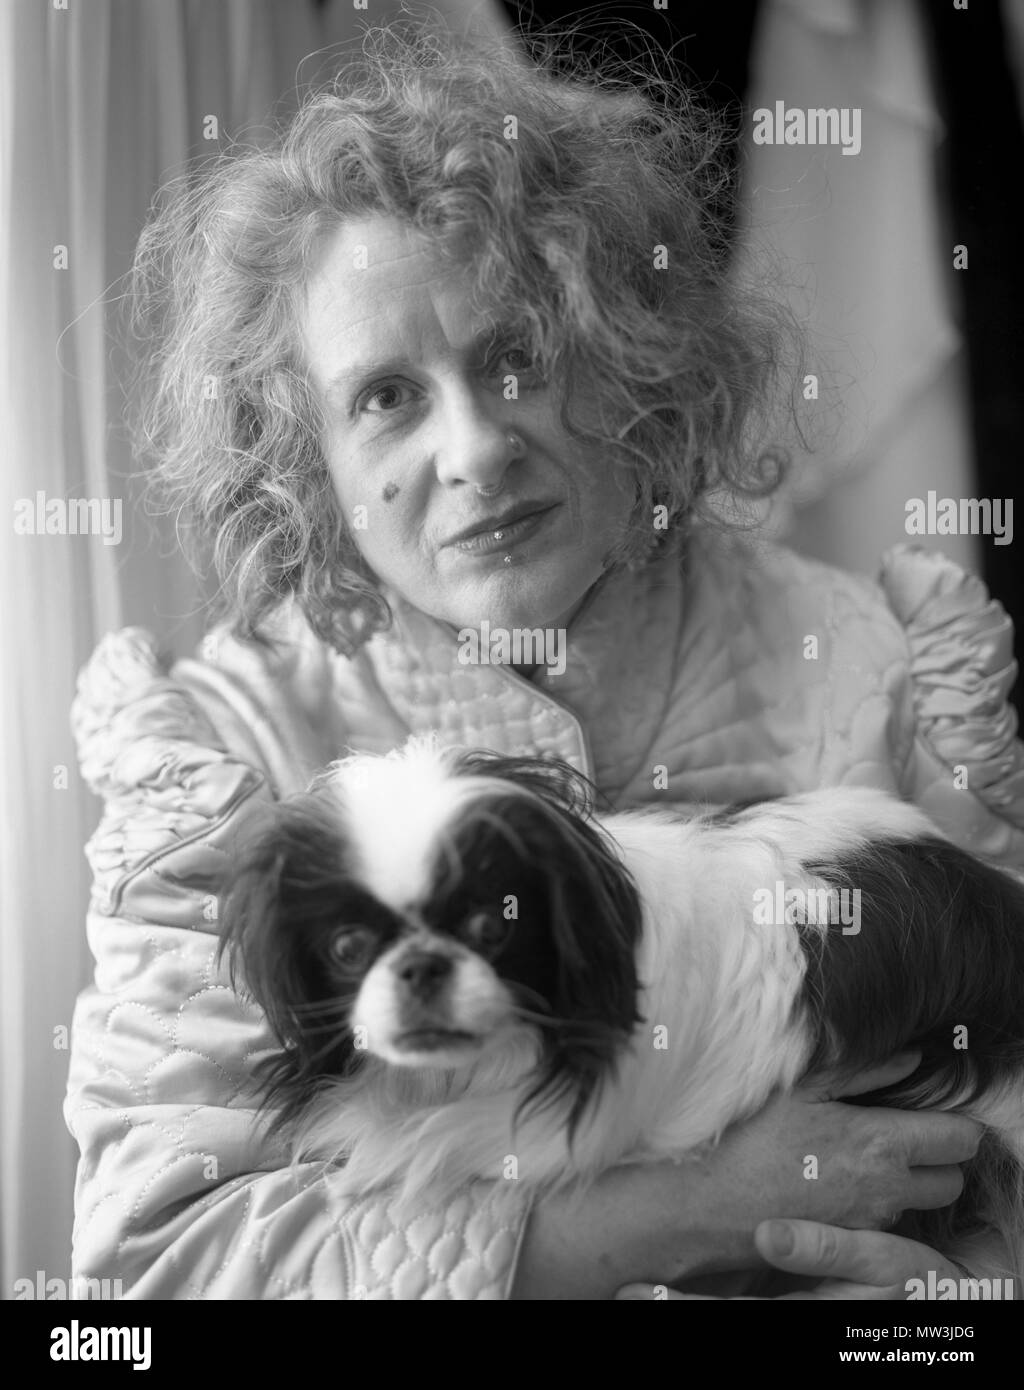 Black and white portrait of woman with facial piercings and frizzy hair holding her Japanese Chin rescue dog. Stock Photo